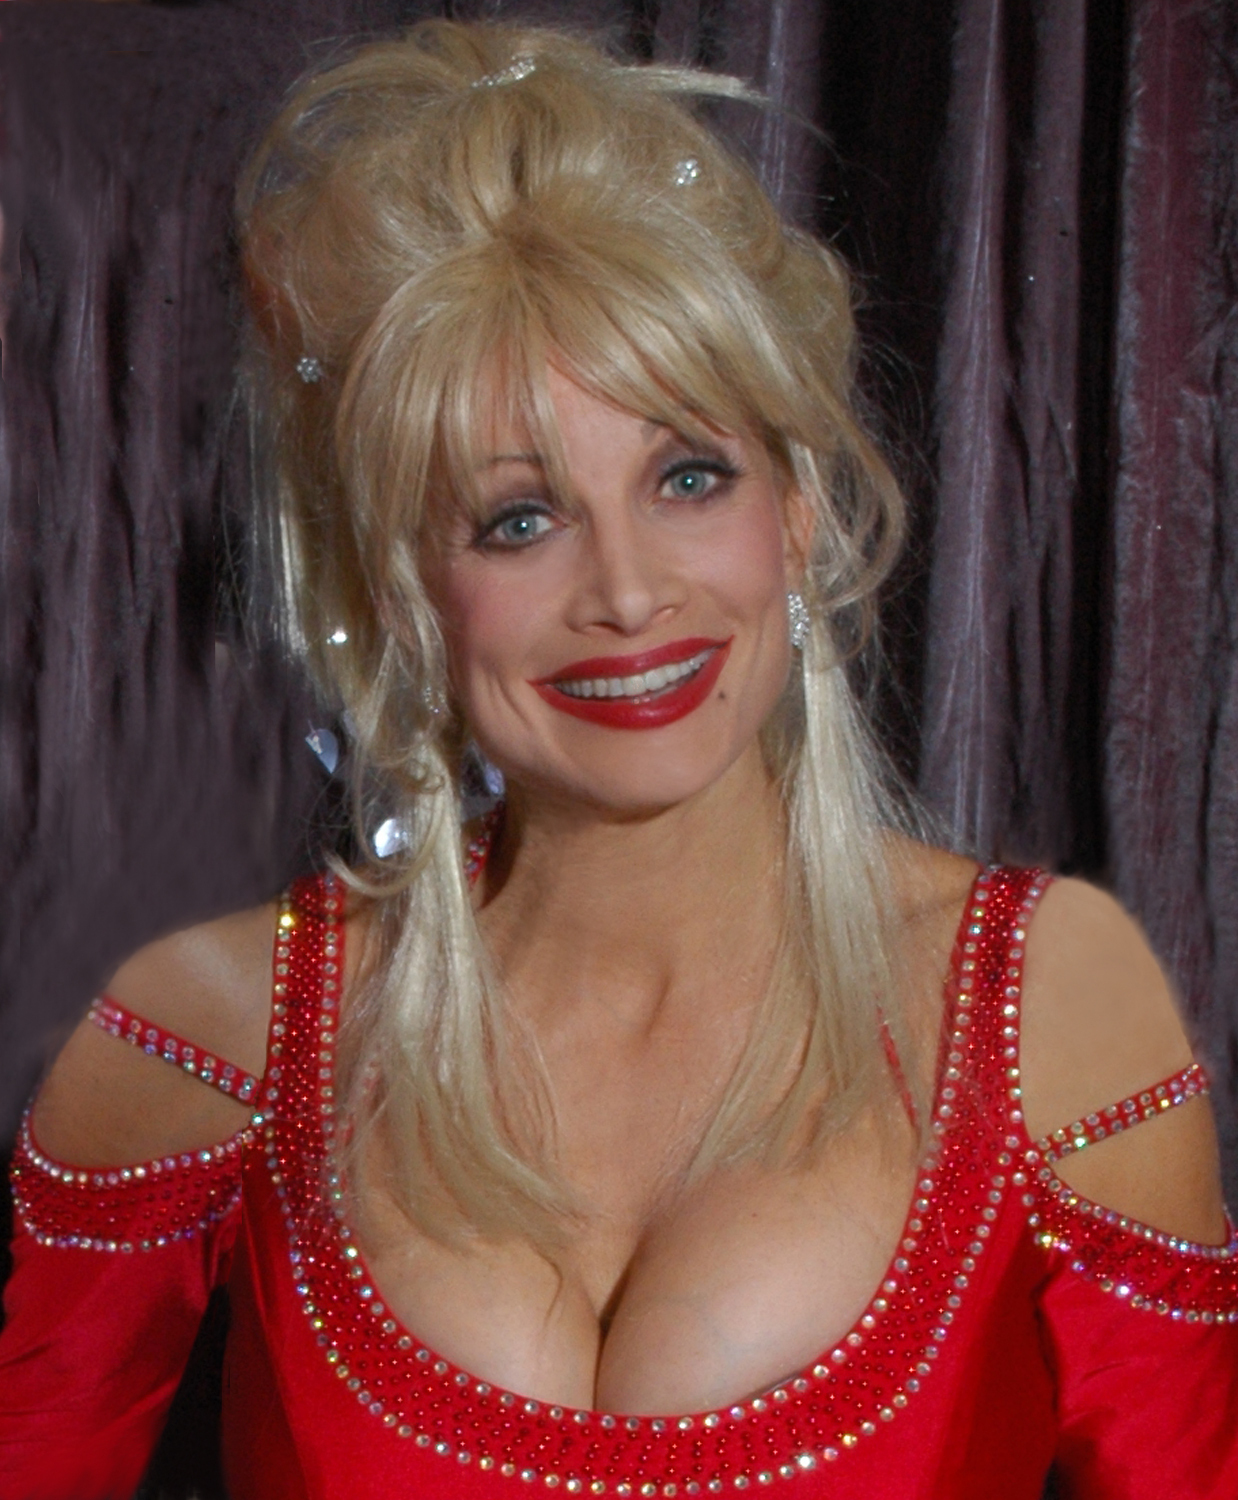 dolly parton images dolly parton hd wallpaper and